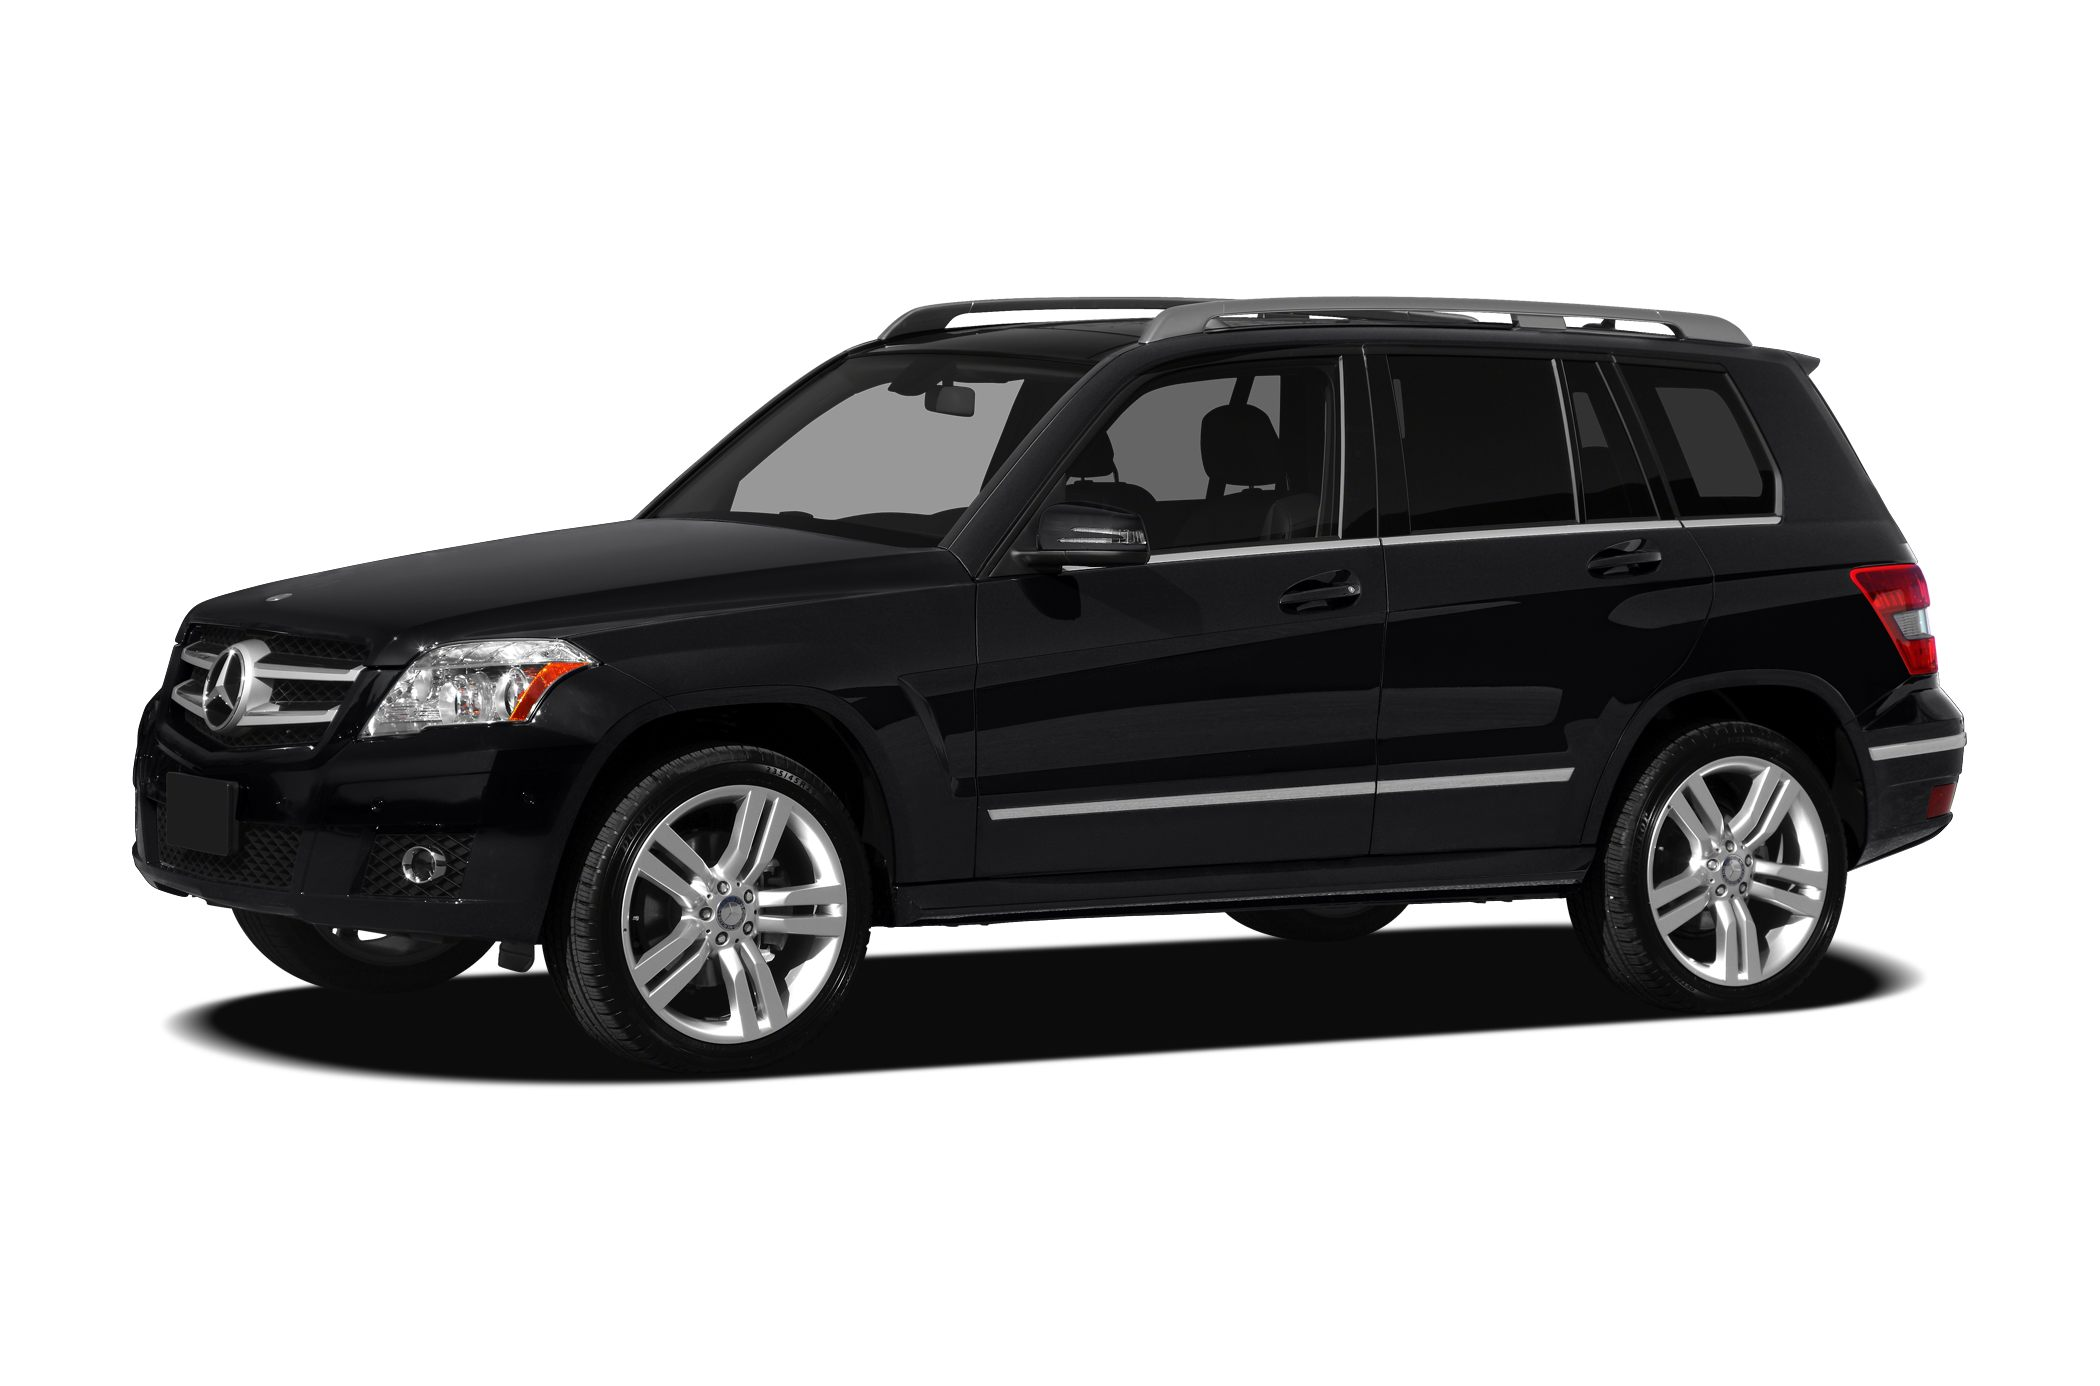 2011 Mercedes-Benz GLK-Class GLK350 4MATIC SUV for sale in Tulsa for $31,000 with 34,370 miles.